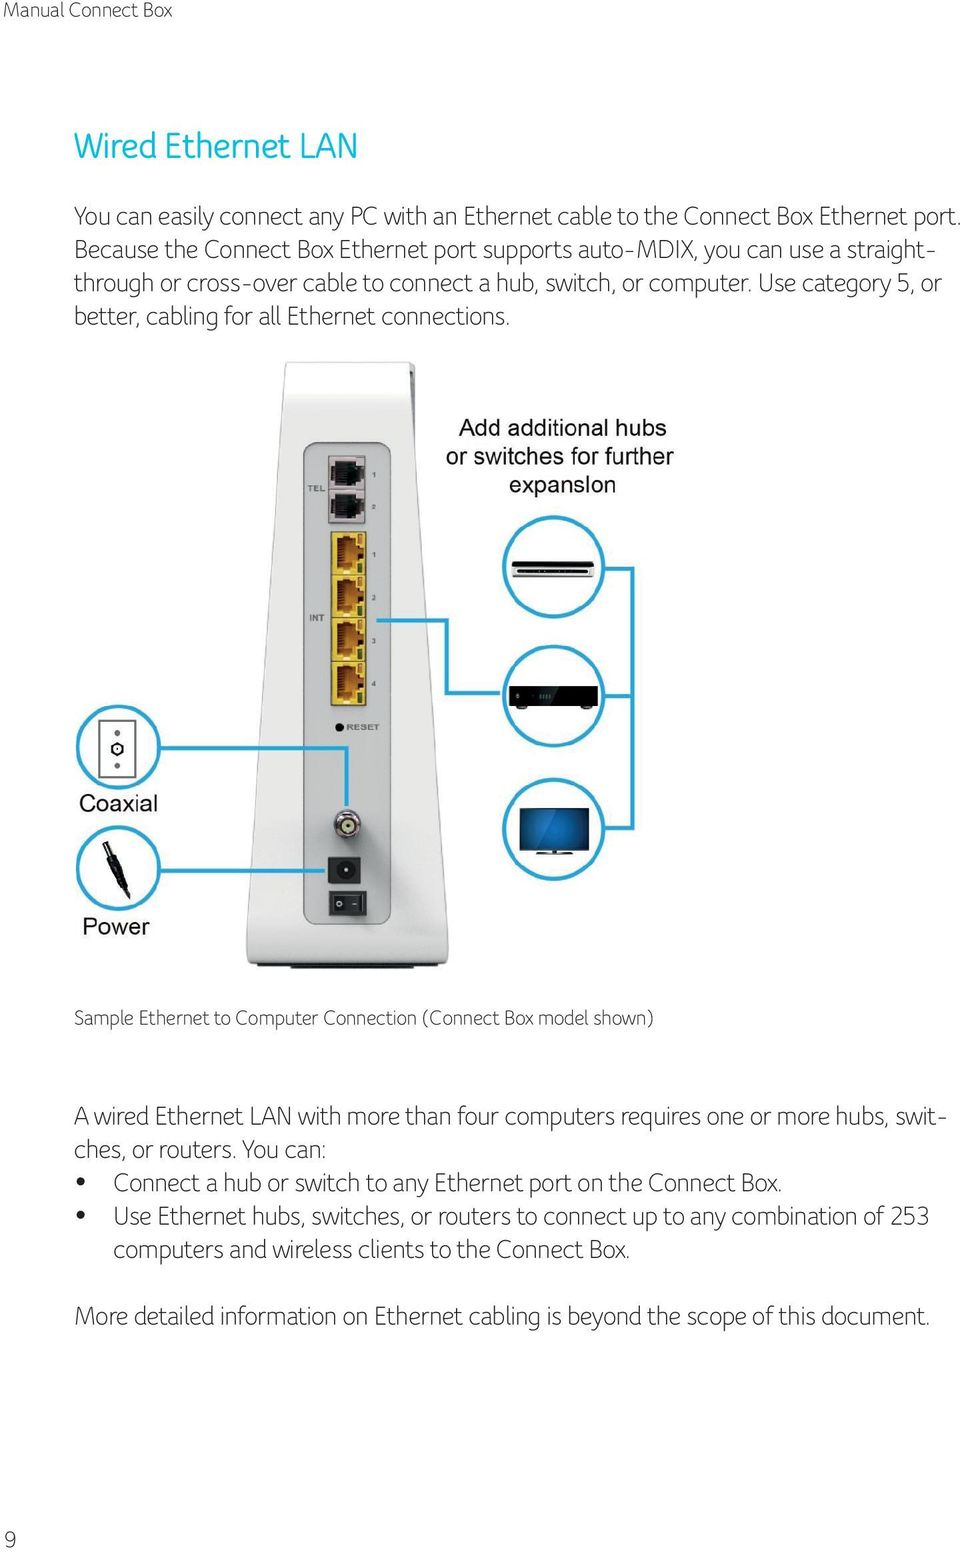 Connect Box Manual Installation Tips Tricks More Power Cable For Connecting Computer To A Hub Or Switch Straight Through Use Category 5 Better Cabling All Ethernet Connections